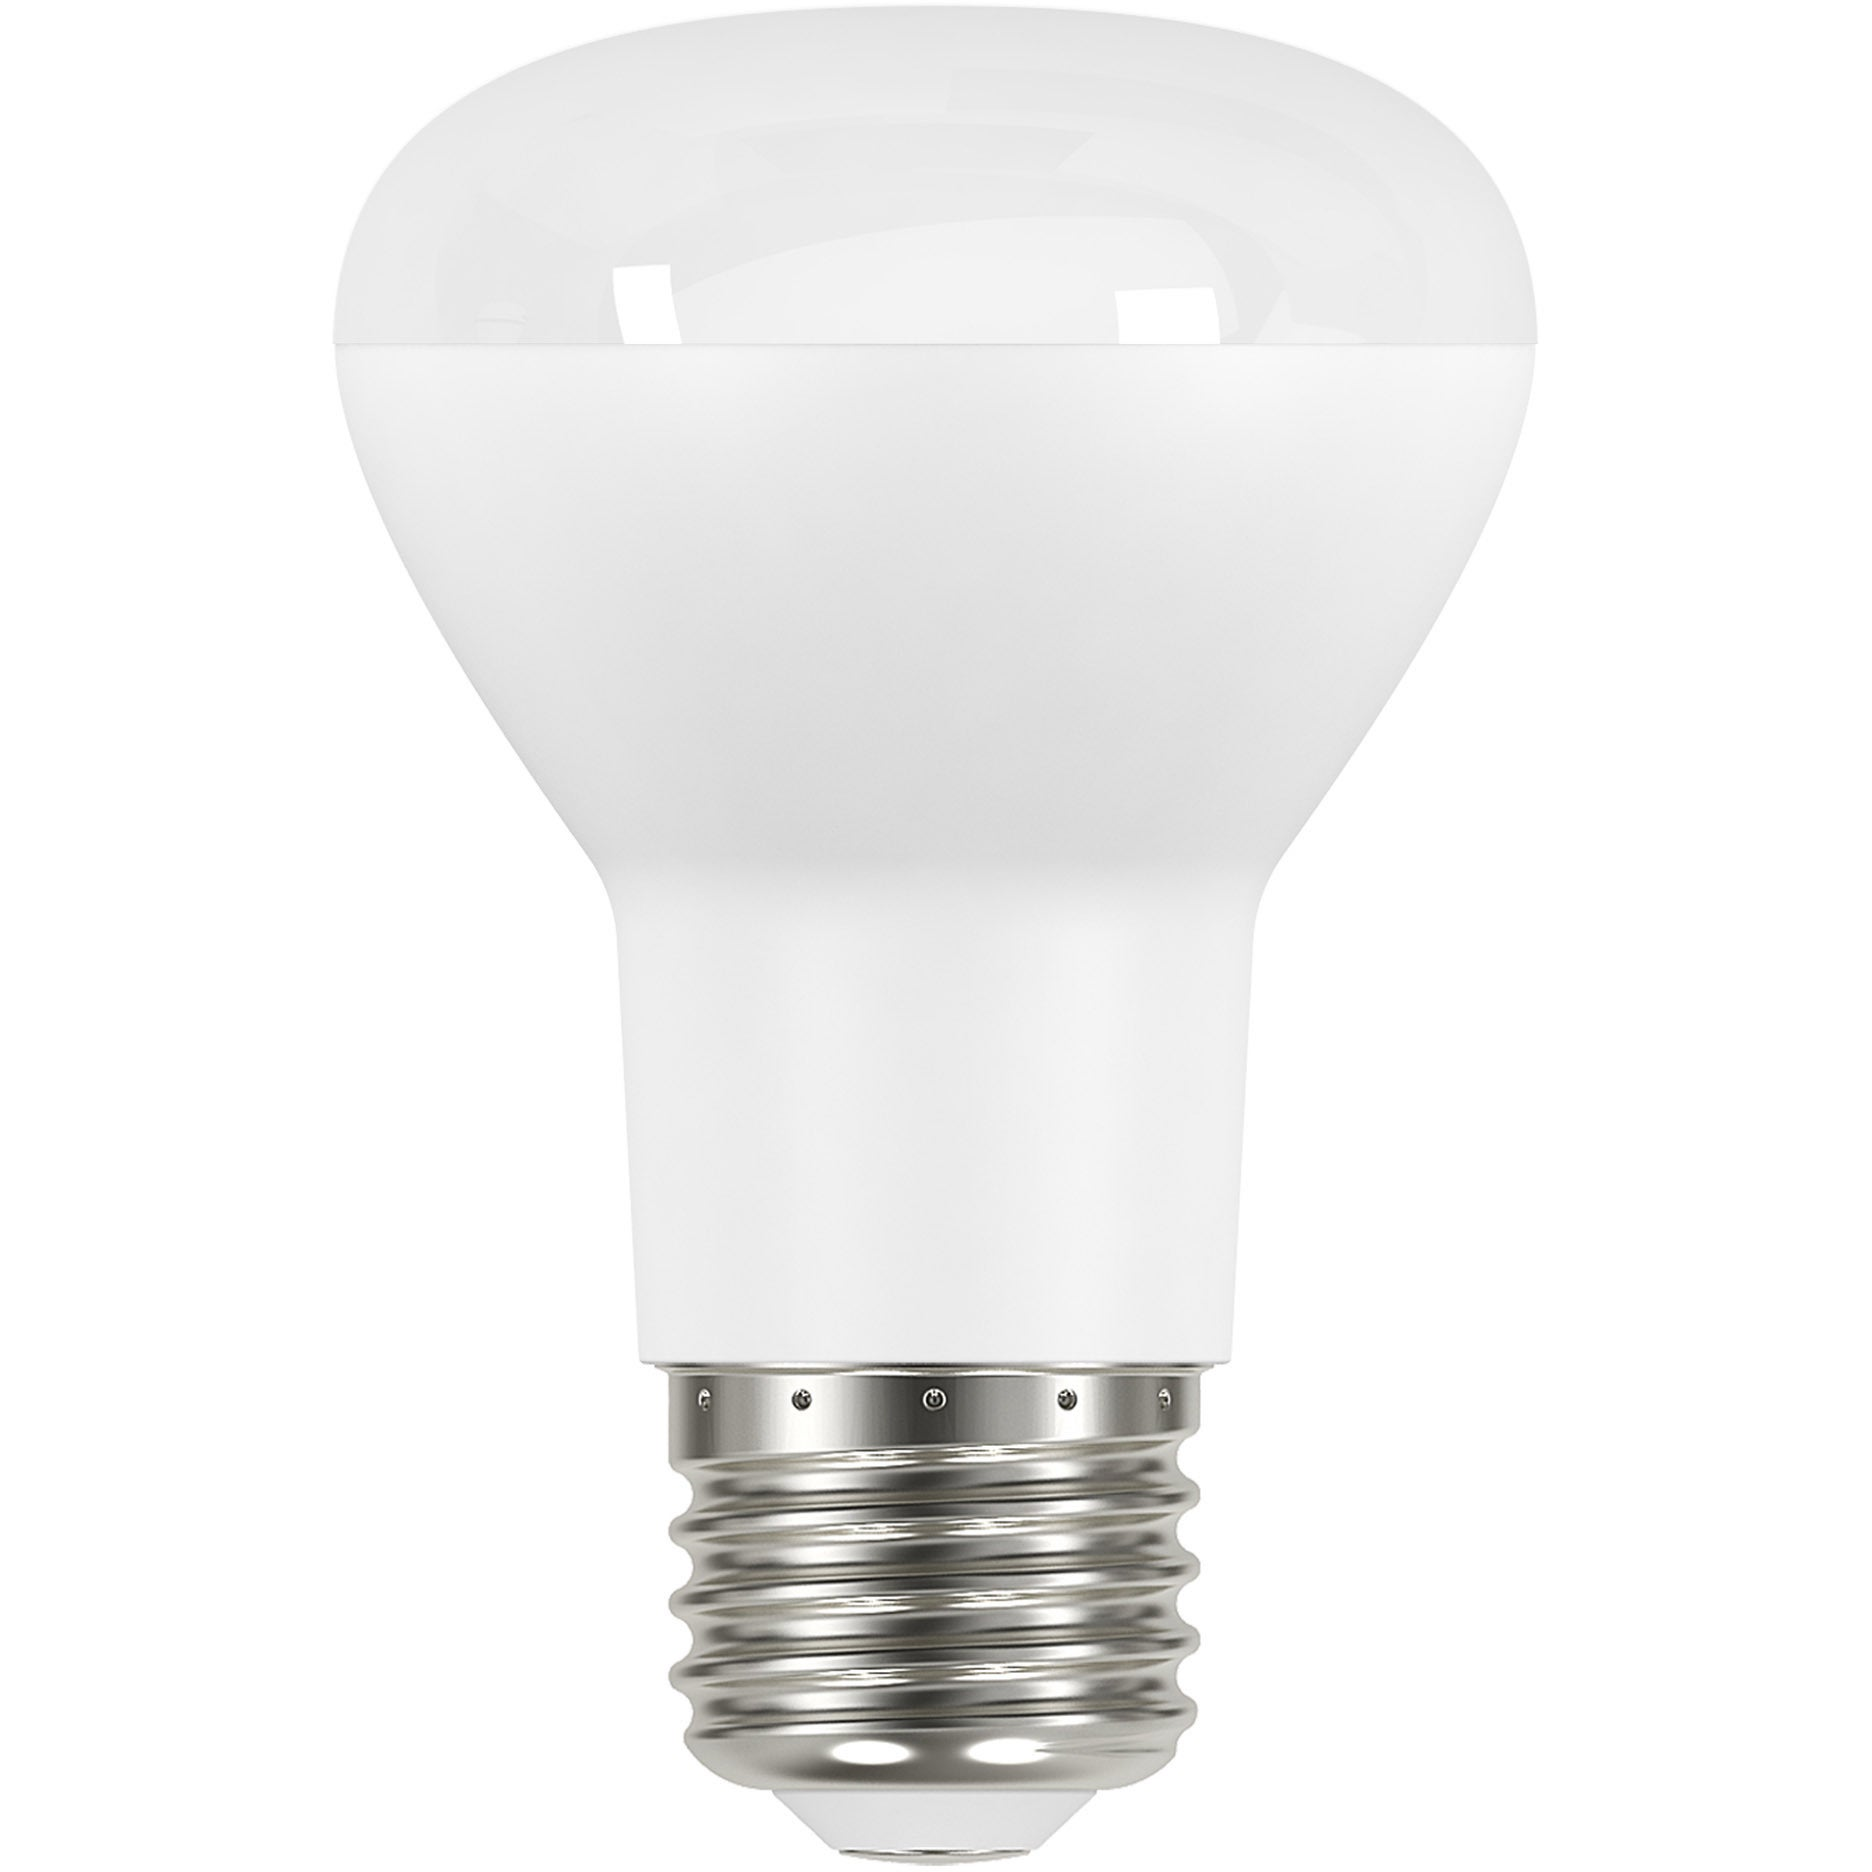 Goodlite led 6 watt 50 watt equivalent recessed light bulb with goodlite led 6 watt 50 watt equivalent recessed light bulb with dimmable flood light pack of 10 free shipping today overstock 19612450 aloadofball Image collections